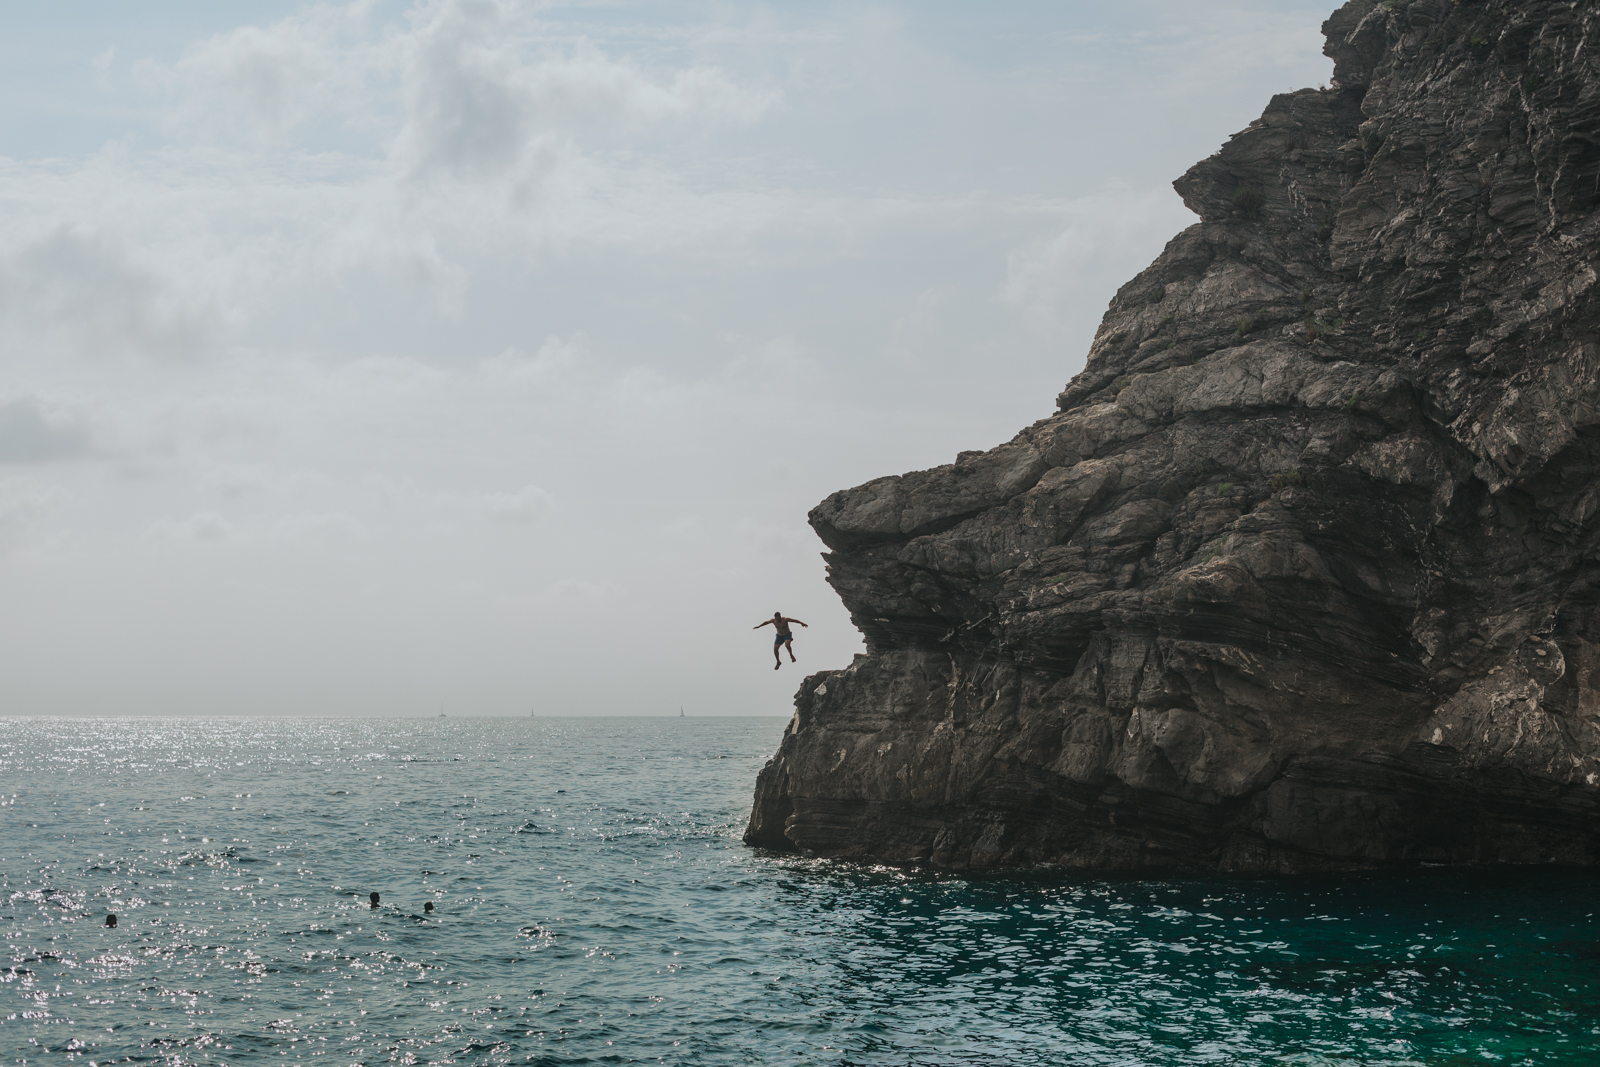 Cliff jumping in Cinque Terre, italy.